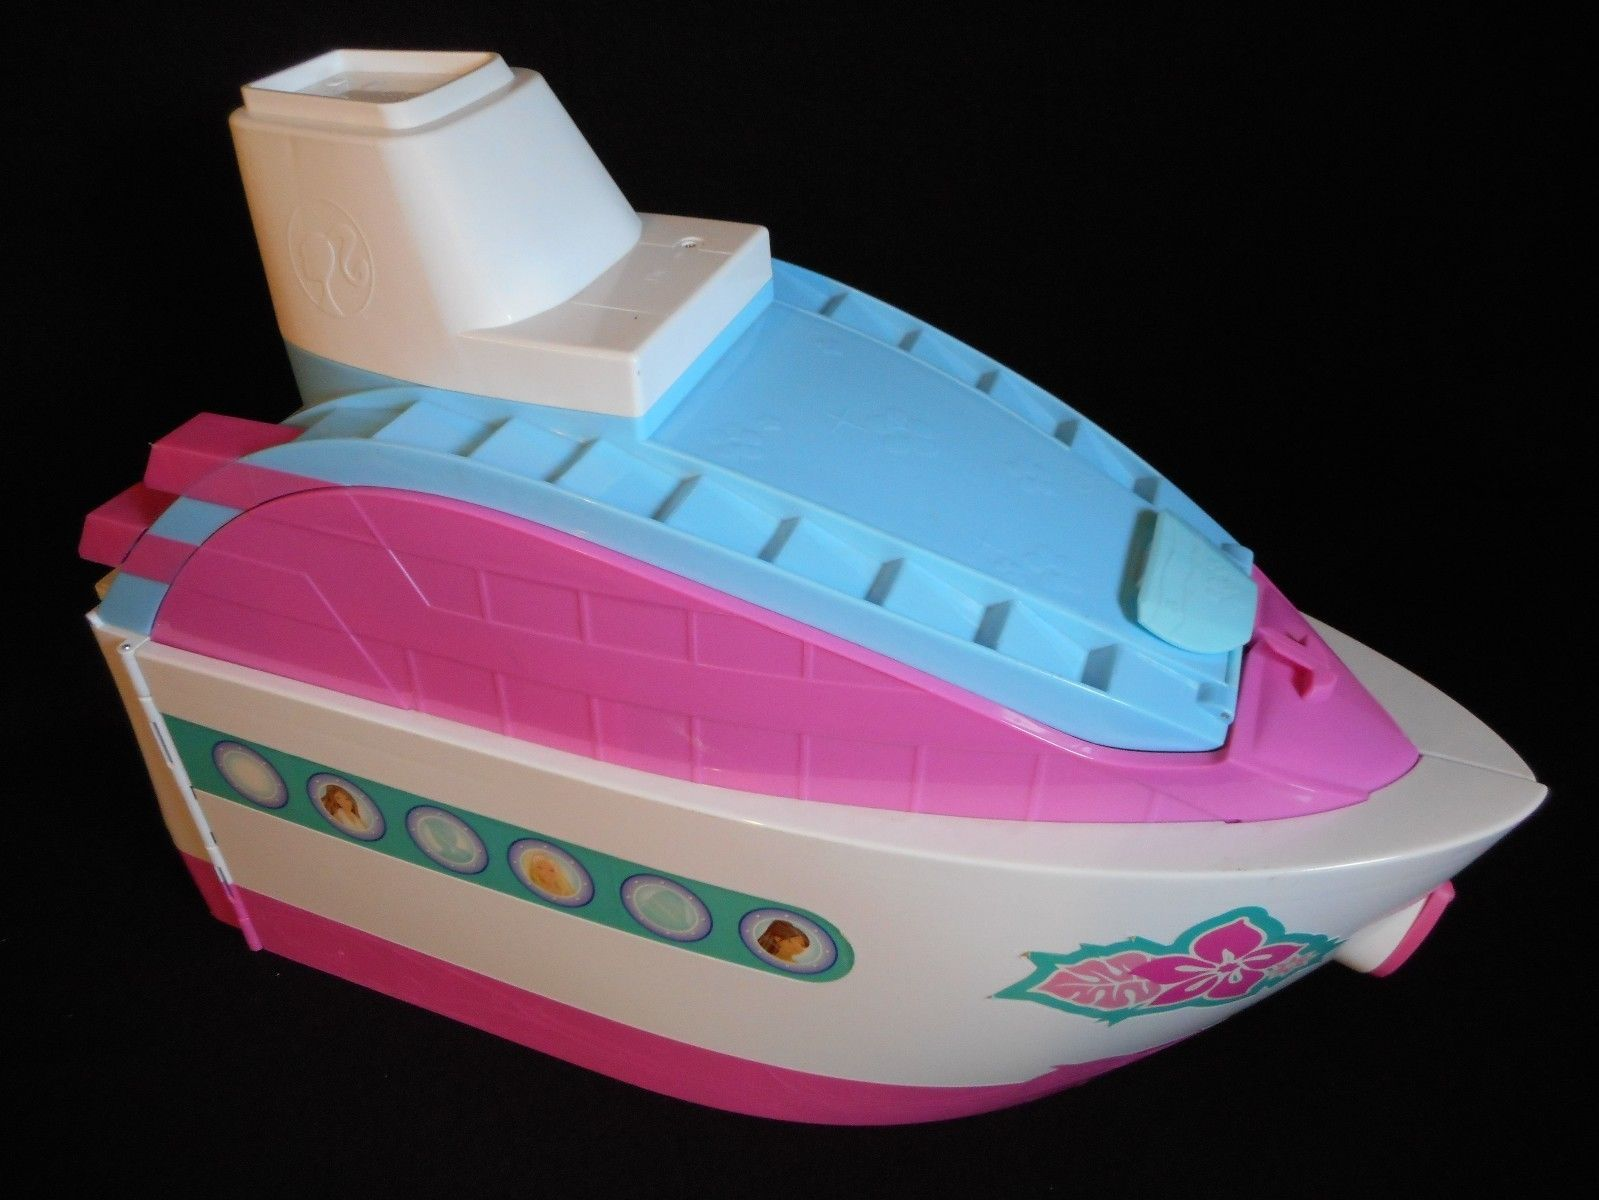 MATTEL BARBIE SISTERS CRUISE SHIP YACHT image 4